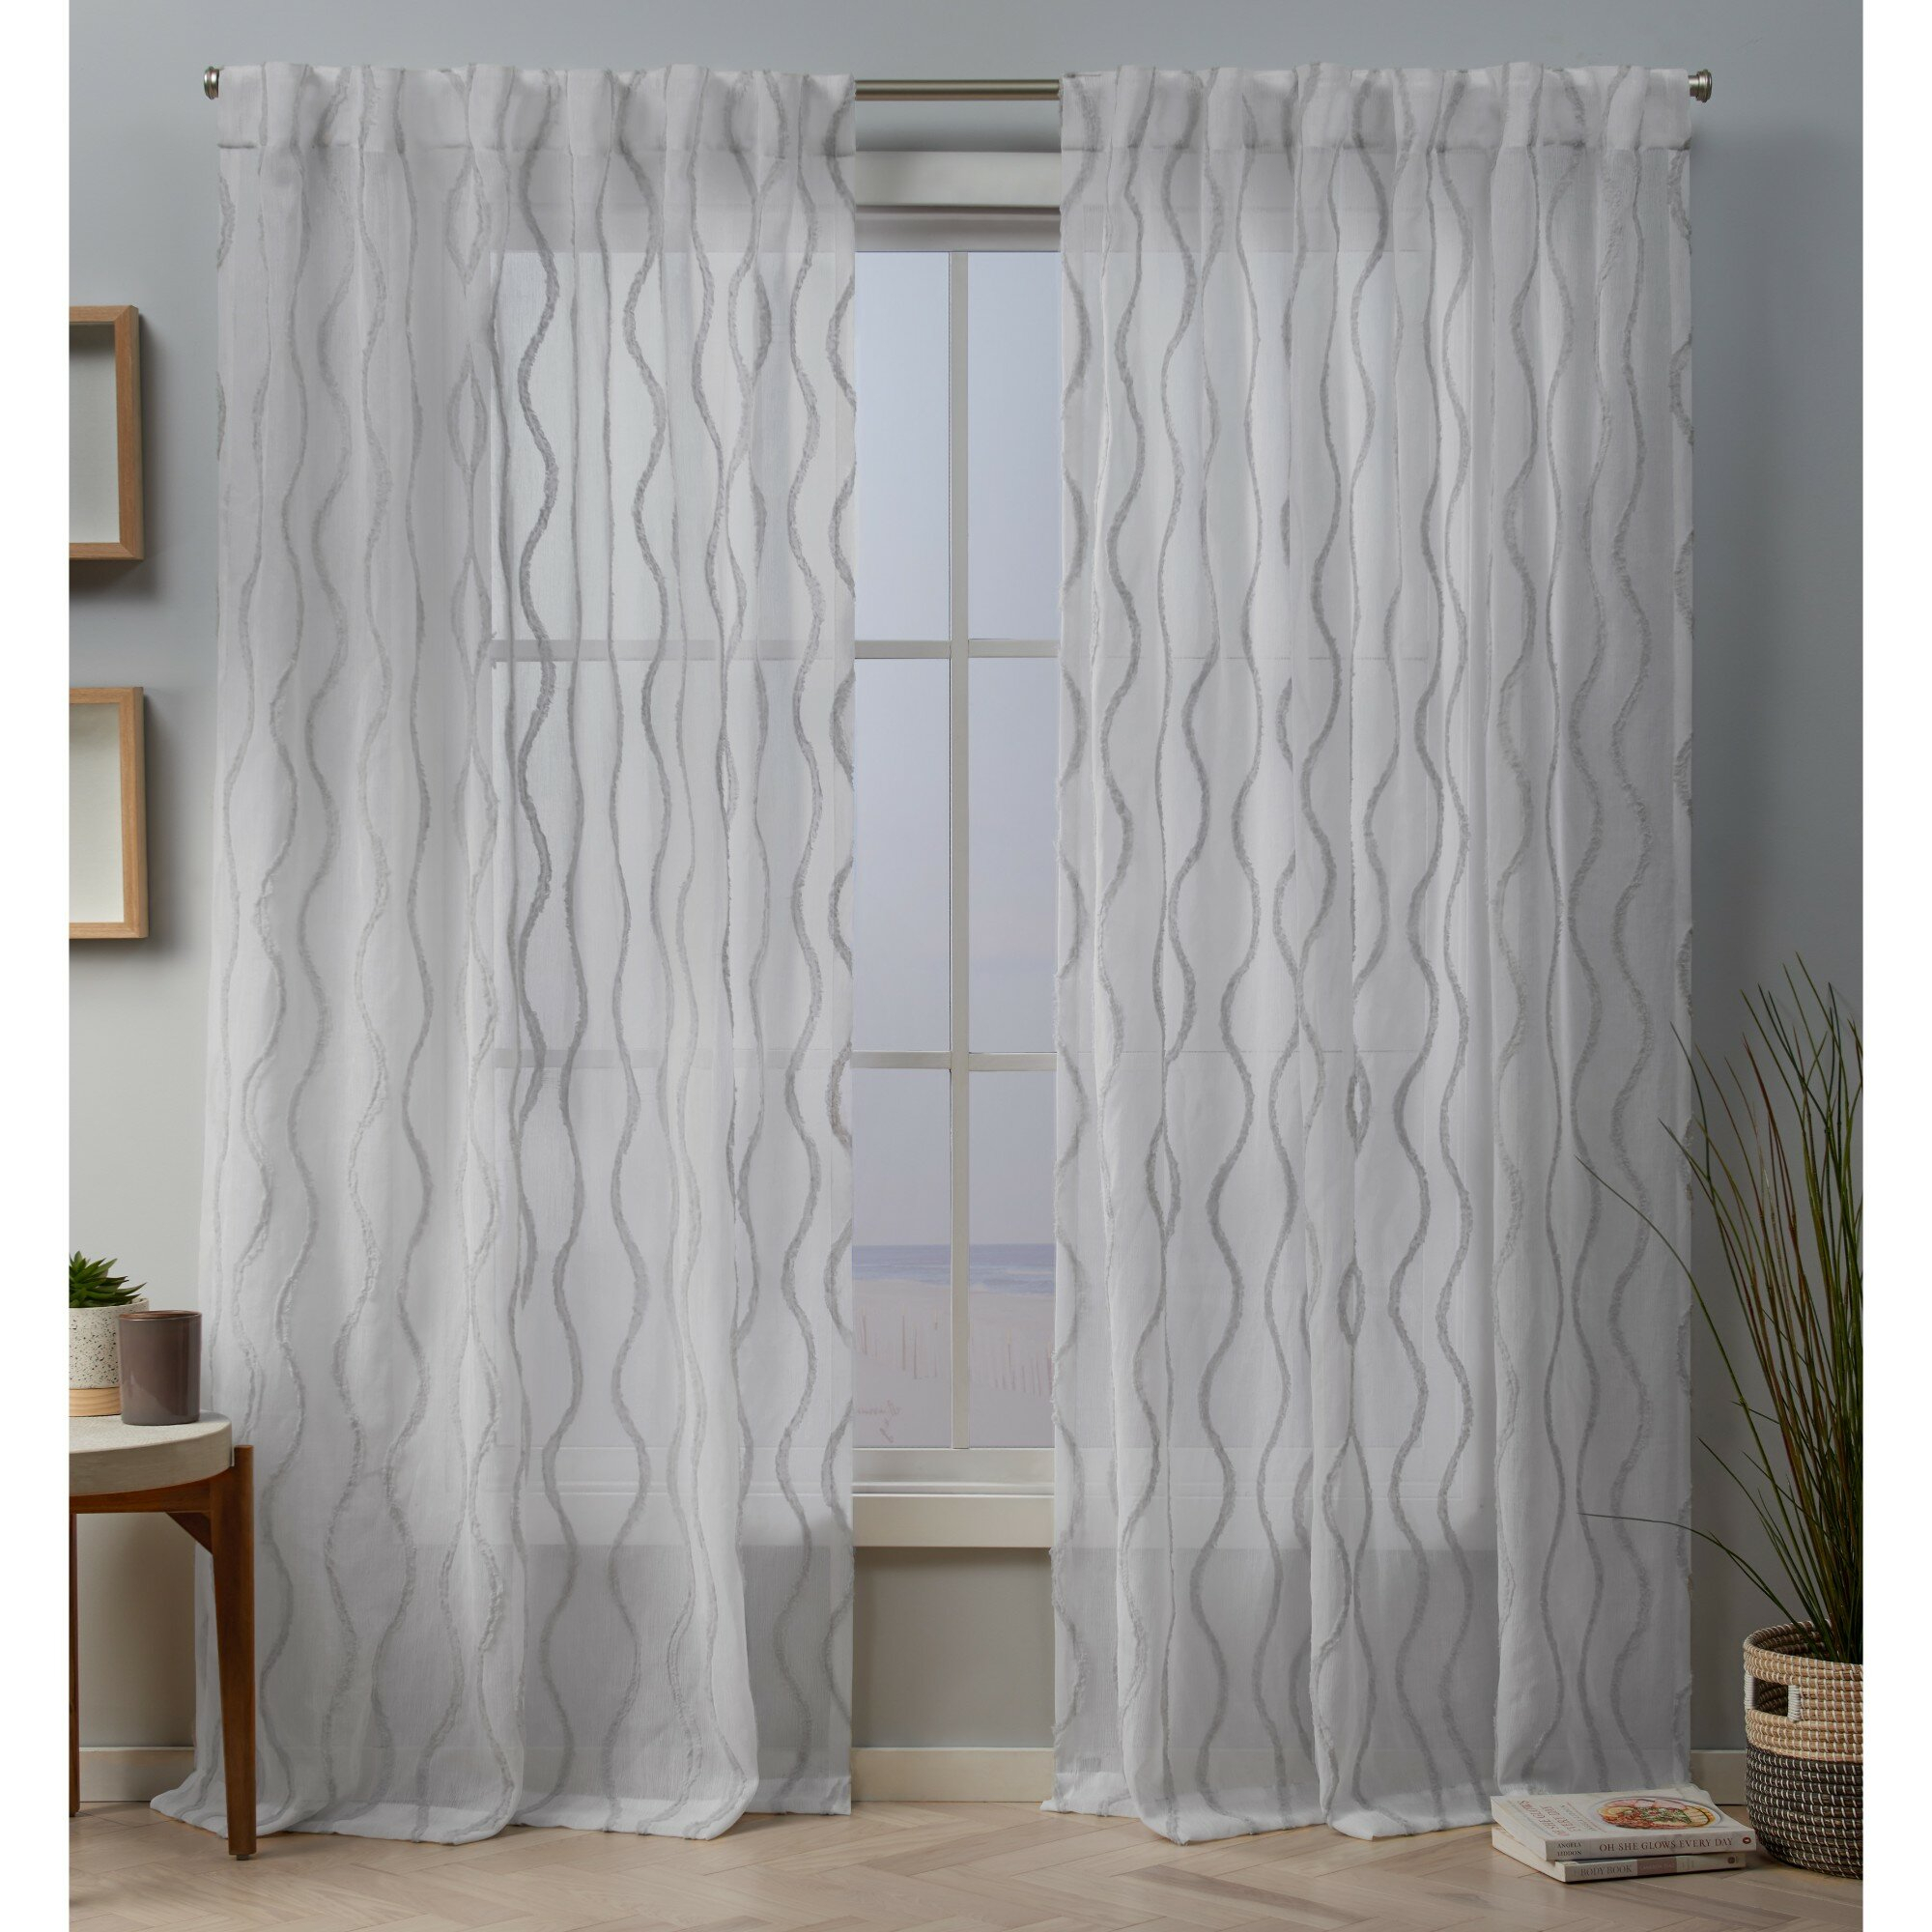 Hulda Sheer Tab Top Panel Pair Throughout Twig Insulated Blackout Curtain Panel Pairs With Grommet Top (View 14 of 30)